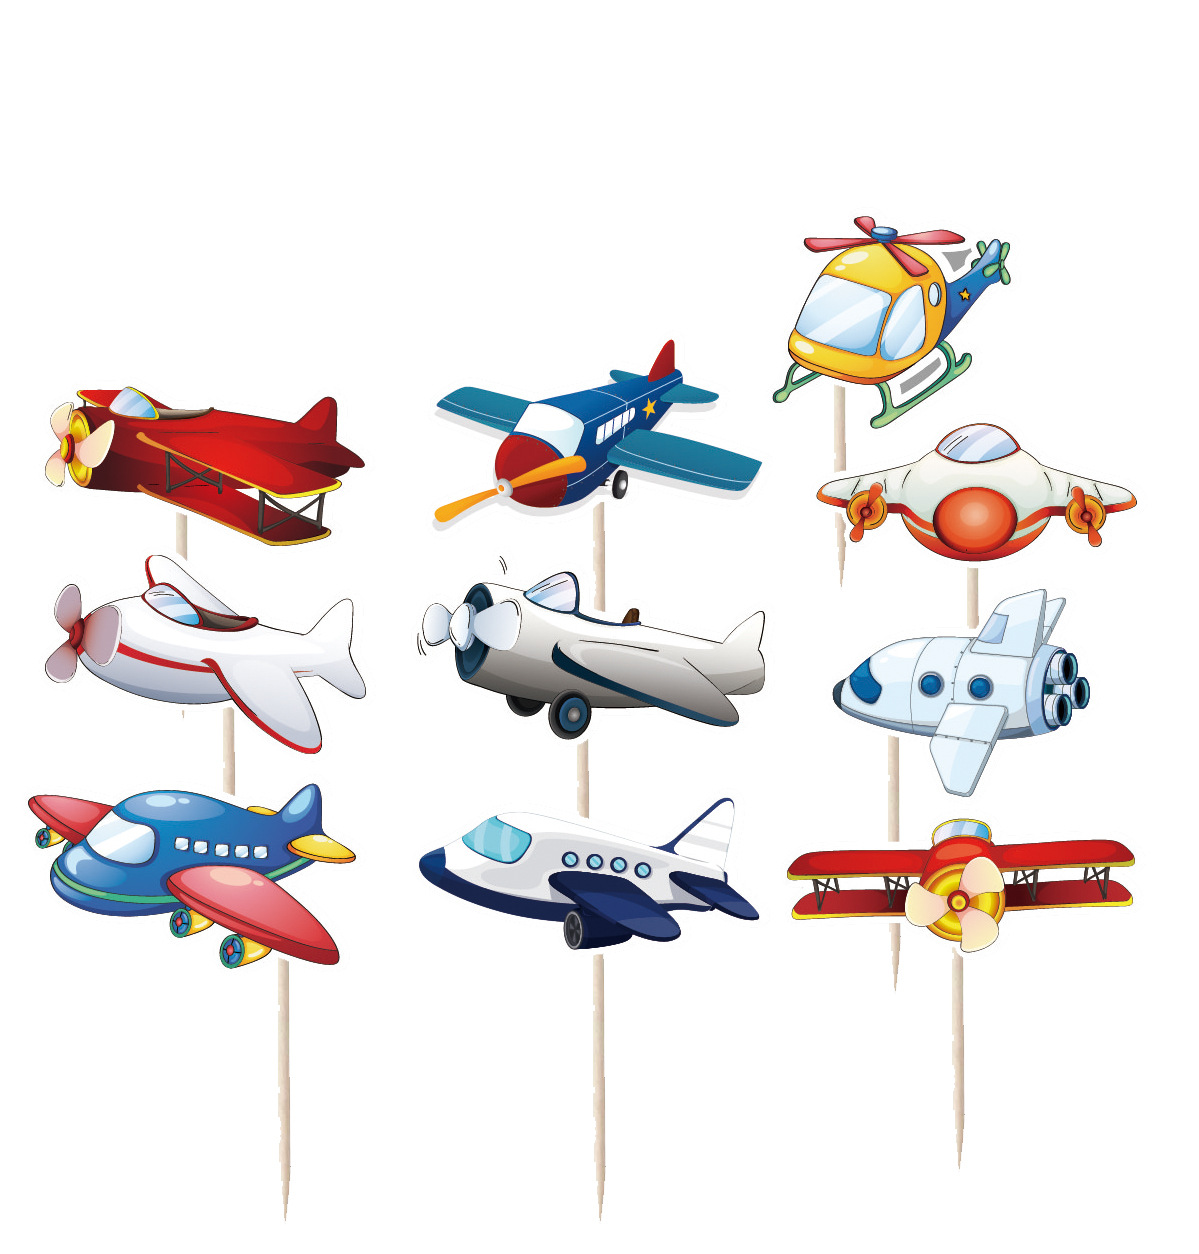 10pcs Cartoon Airplane Cupcake Toppers Decorations for Kids Aircraft Themed Birthday Party Cake Decoration Supplies